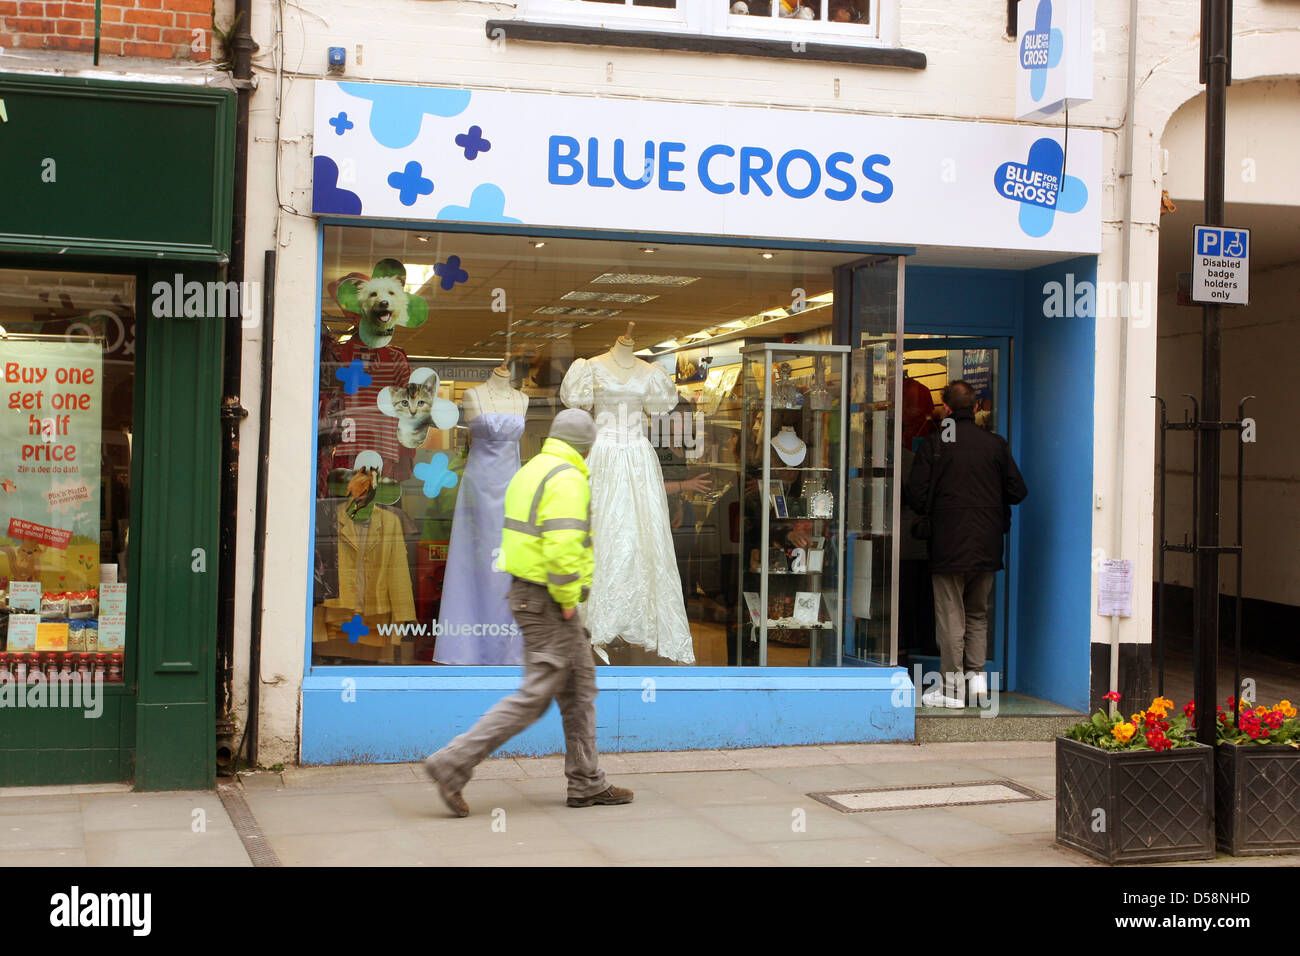 Man walking past the Blue cross animal charity shop on the high street in Wells, Somerset, March 2013 - Stock Image